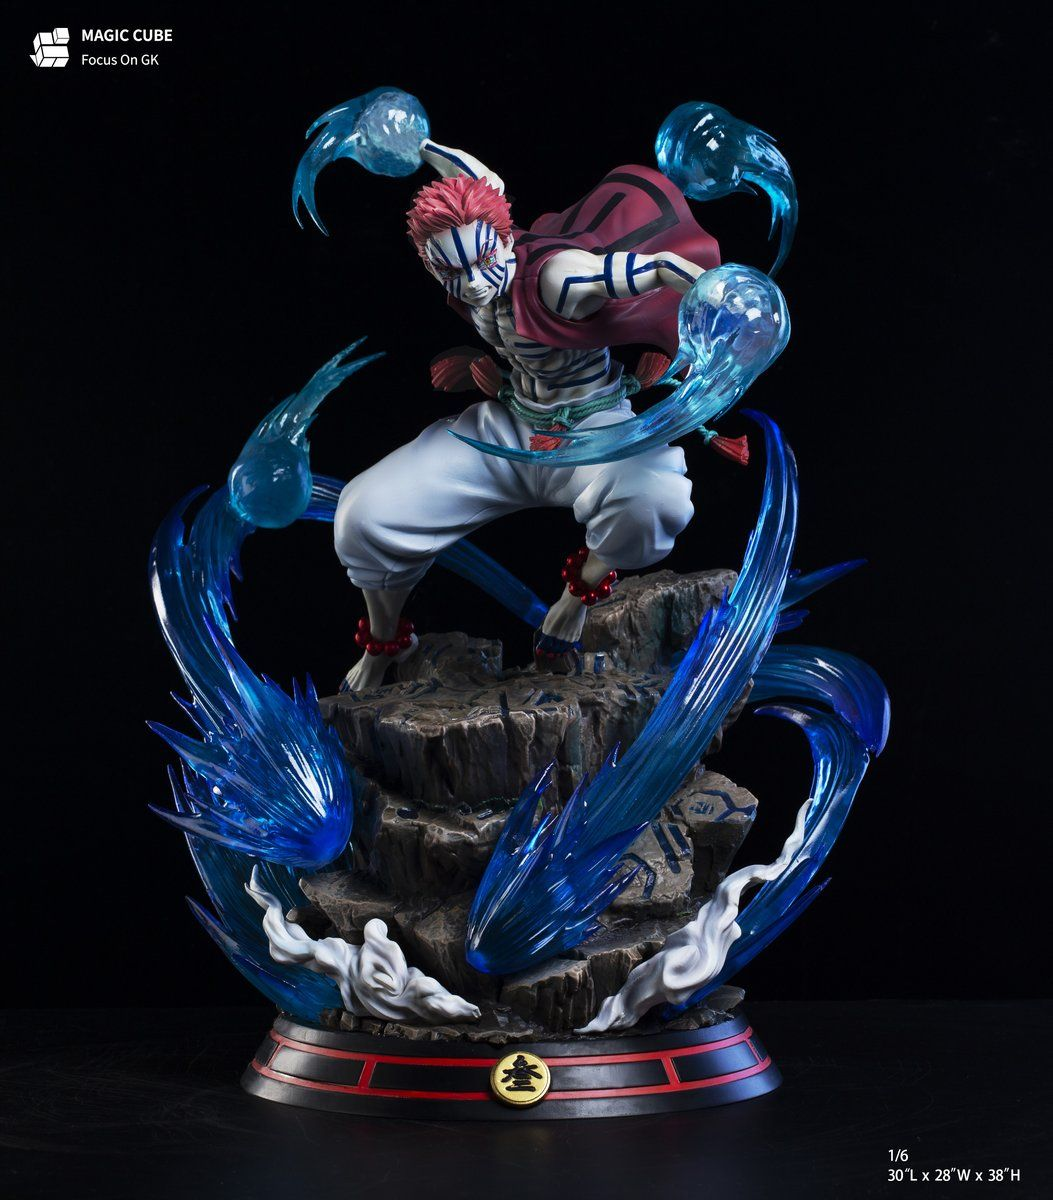 Pin By Gk Figure On Demon Slayer Anime Action Figures Statues In 2021 Anime Figures Anime Figurines Demon